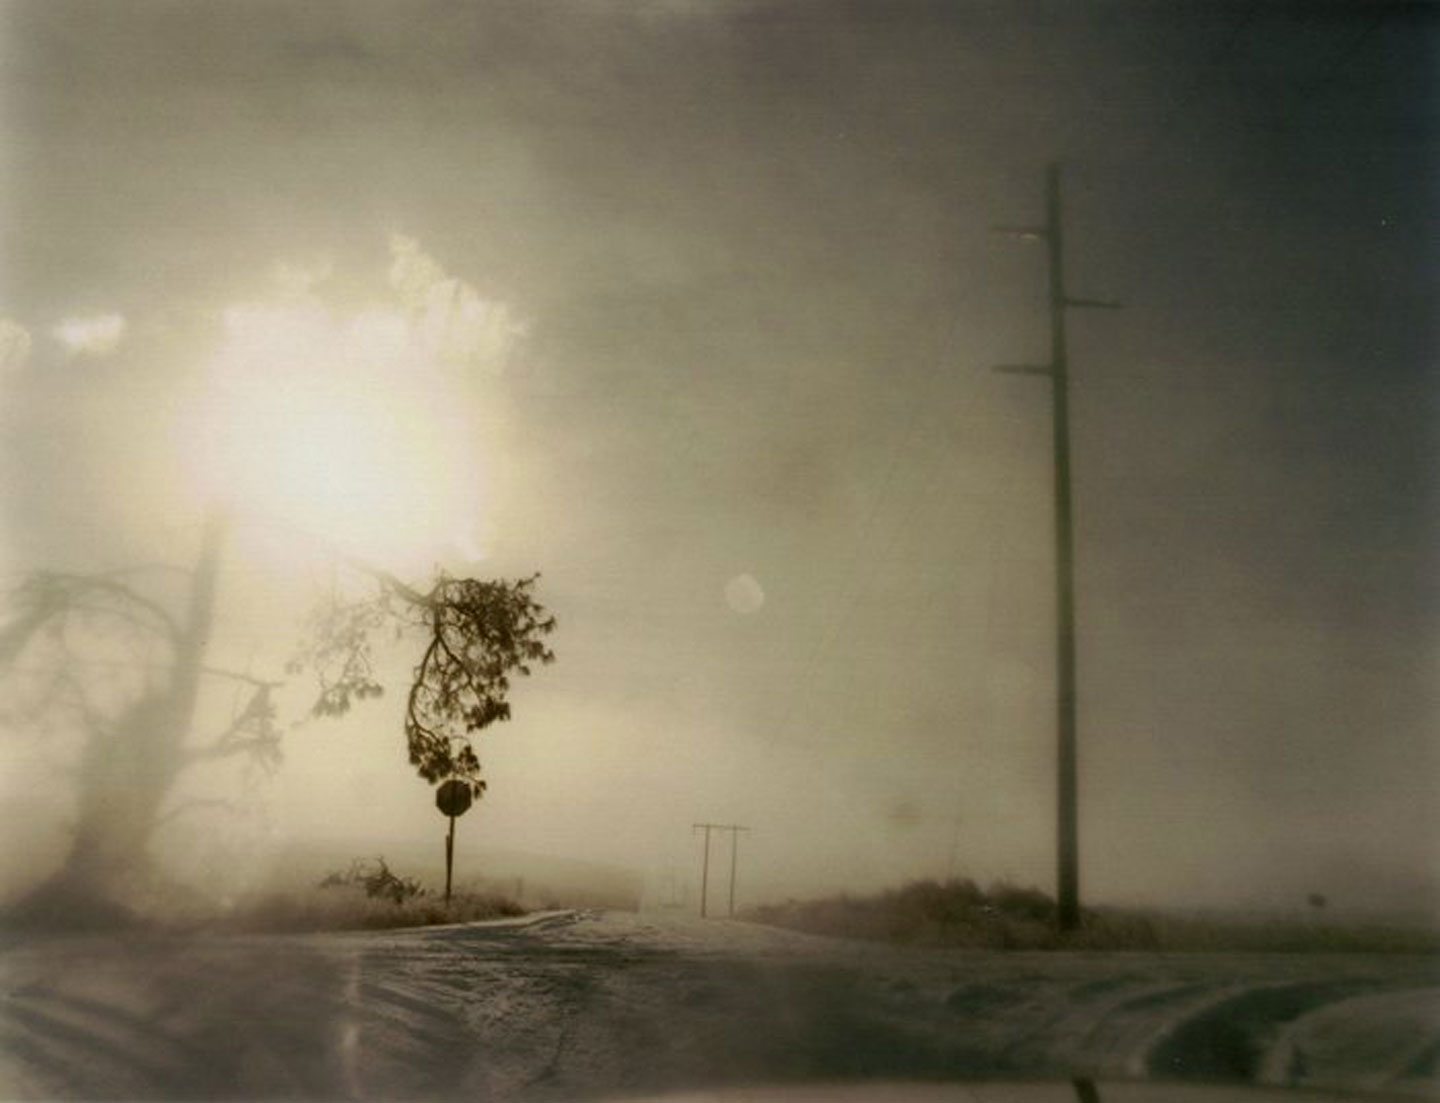 Todd Hido: Crooked Cracked Tree in Fog (One Picture Book #60), Limited Edition